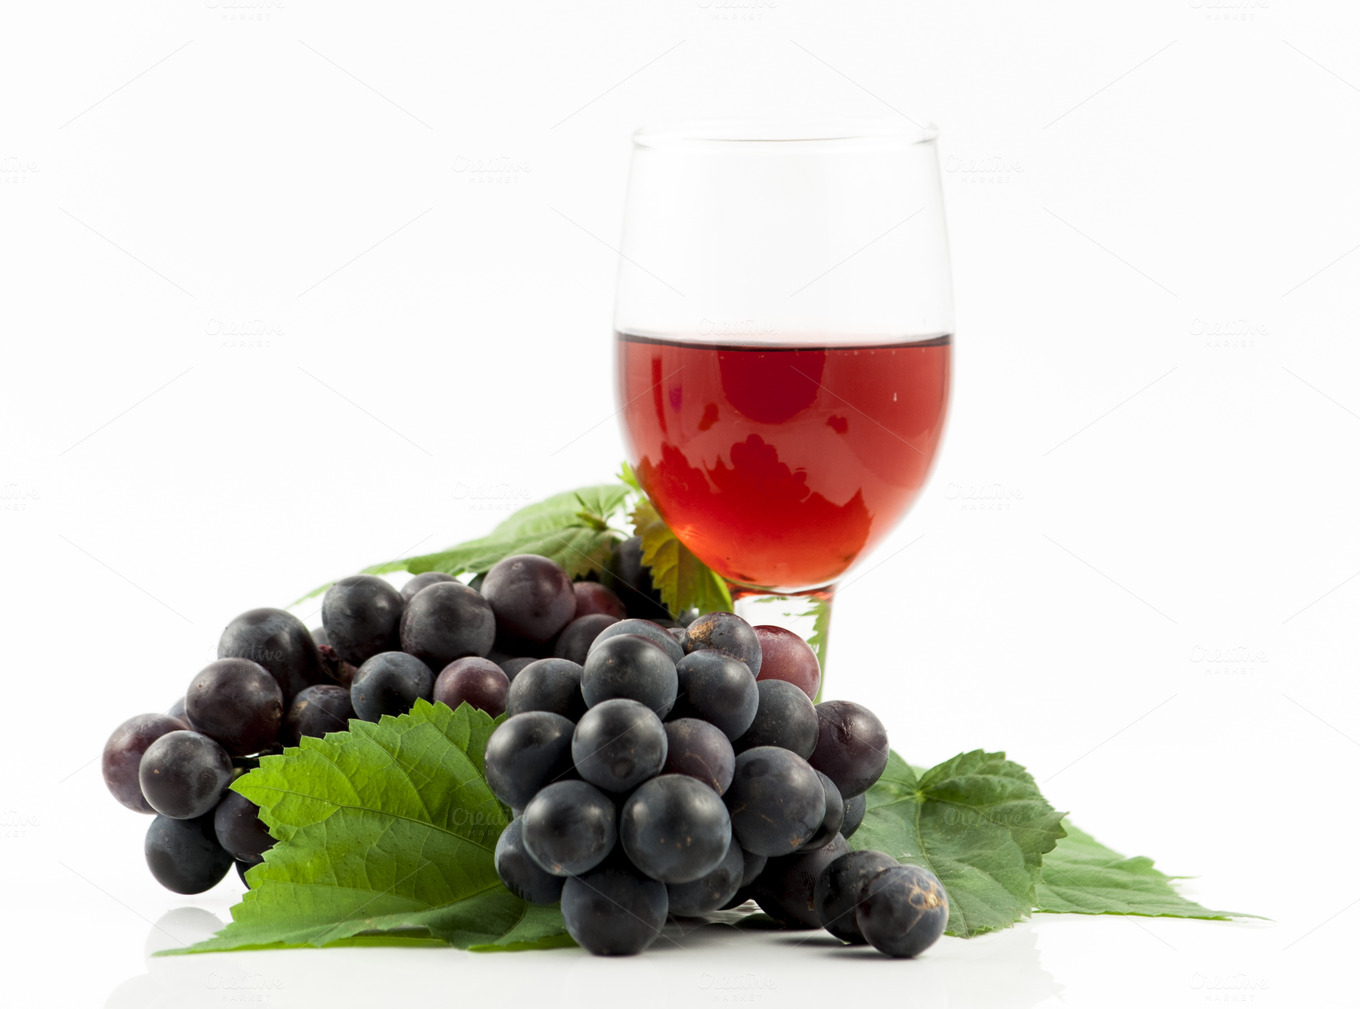 red wine glass with grapes ~ Food & Drink Photos on ...